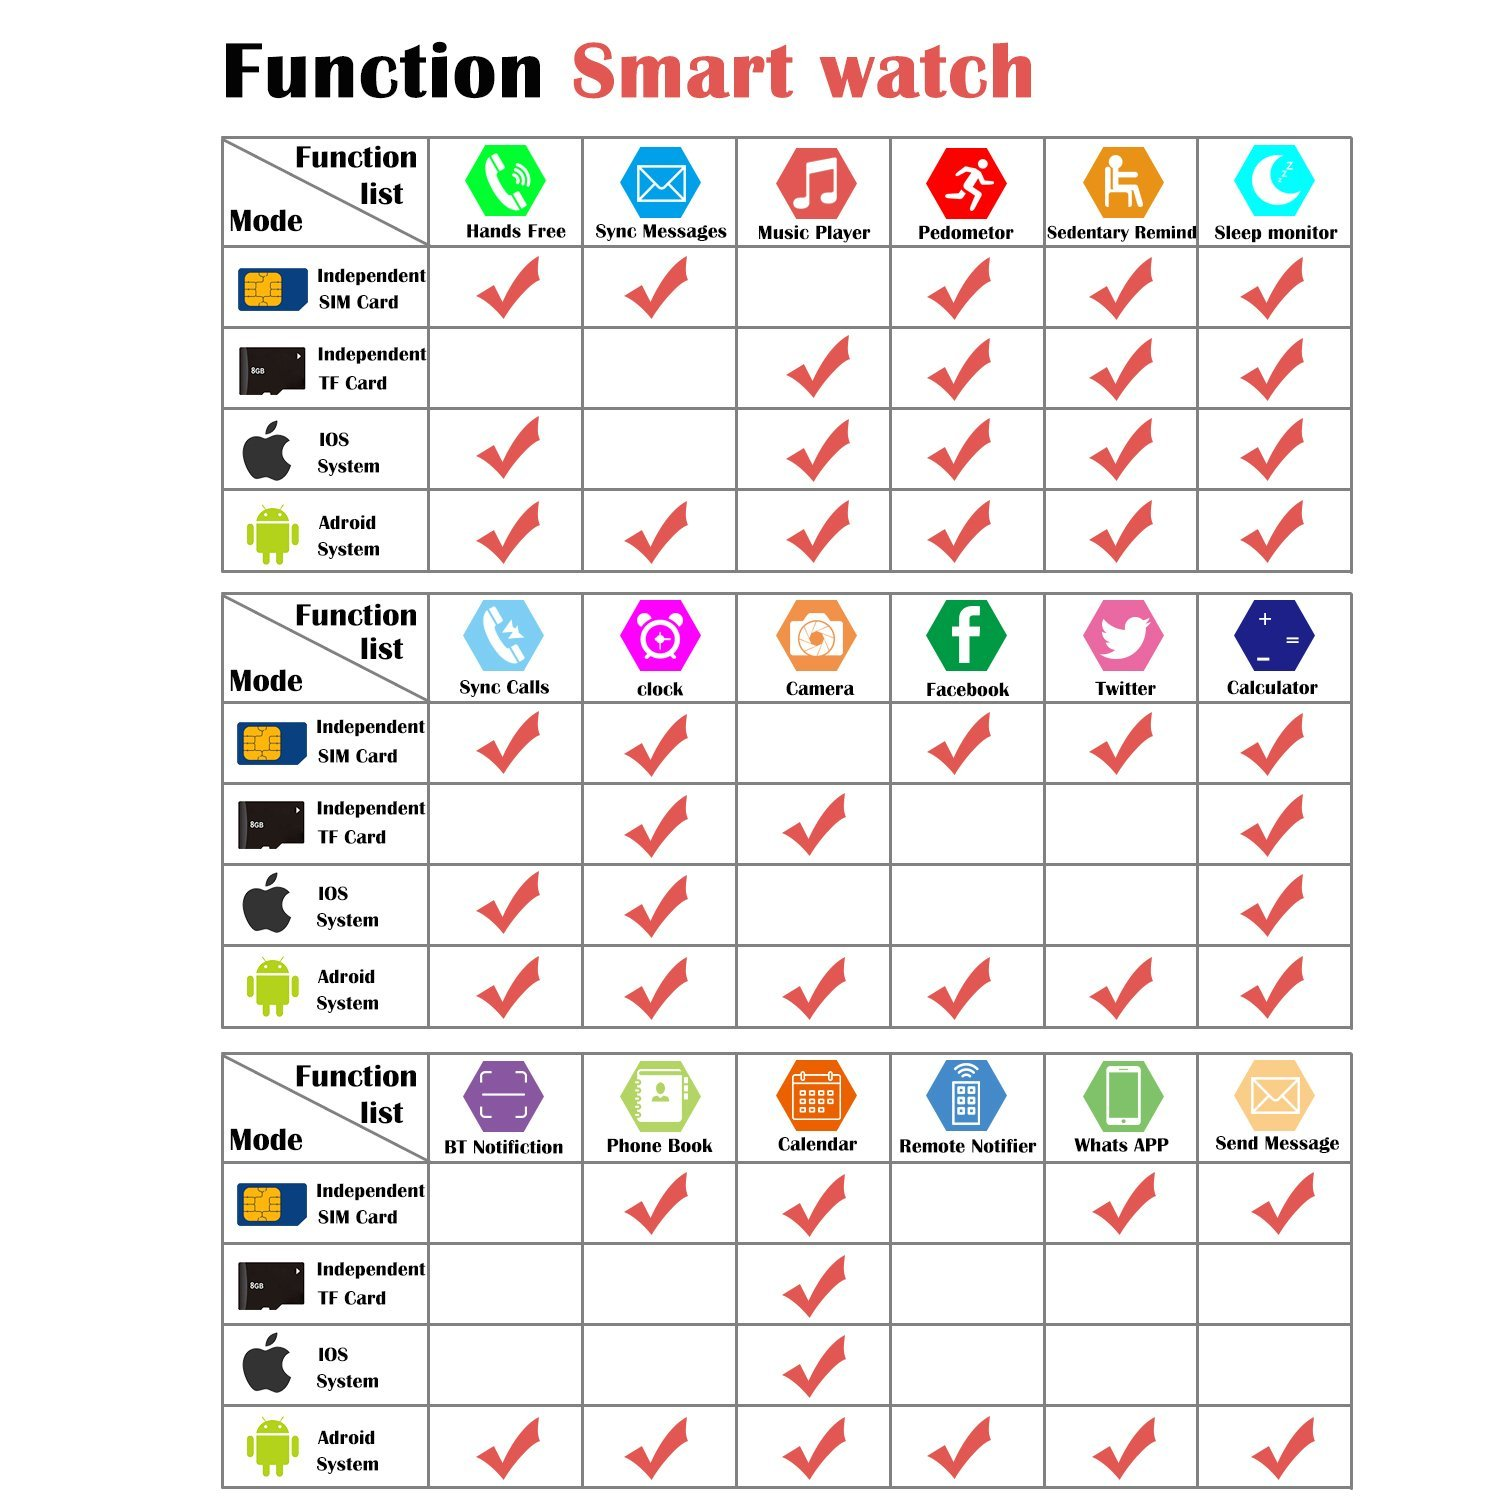 81C7rXzrrkL. SL1500  - Smart Watch DZ09 For Android Devices